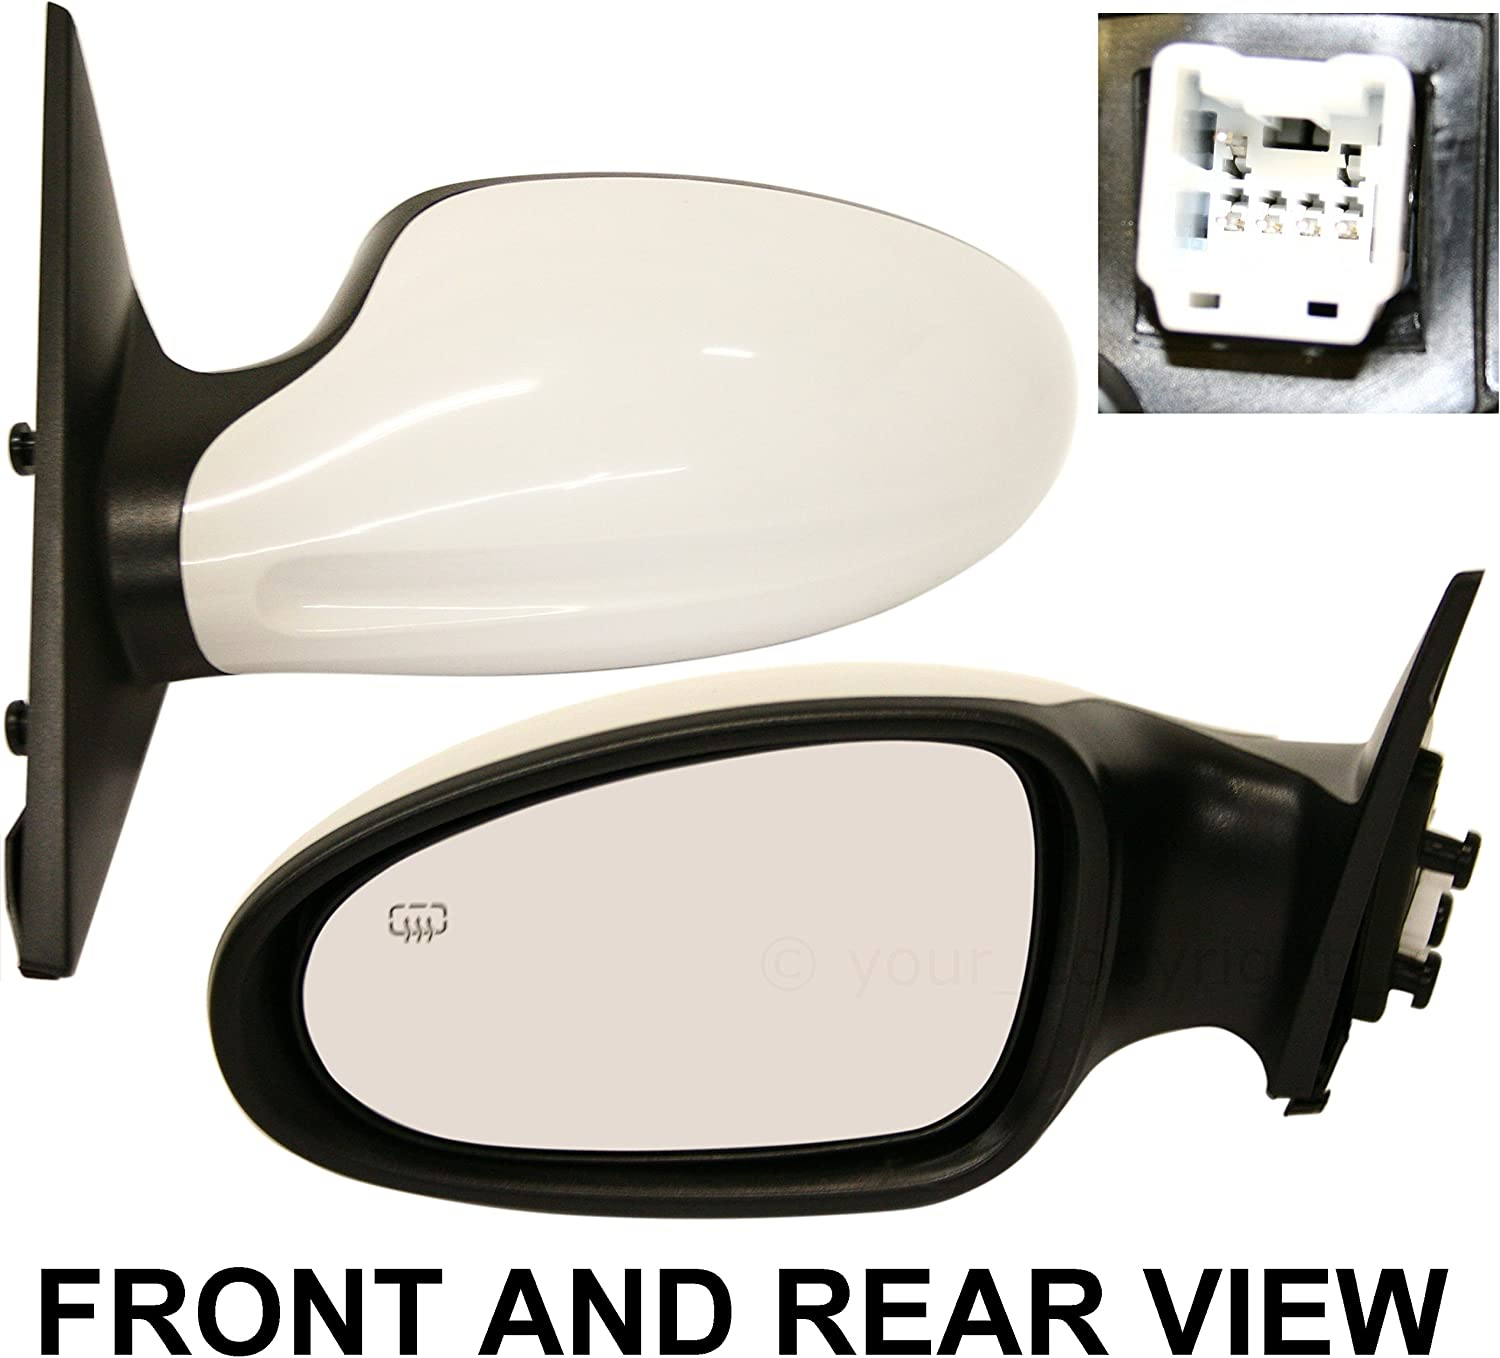 NI1320156 Replacement Door Mirror for 05-06 Altima Driver Side